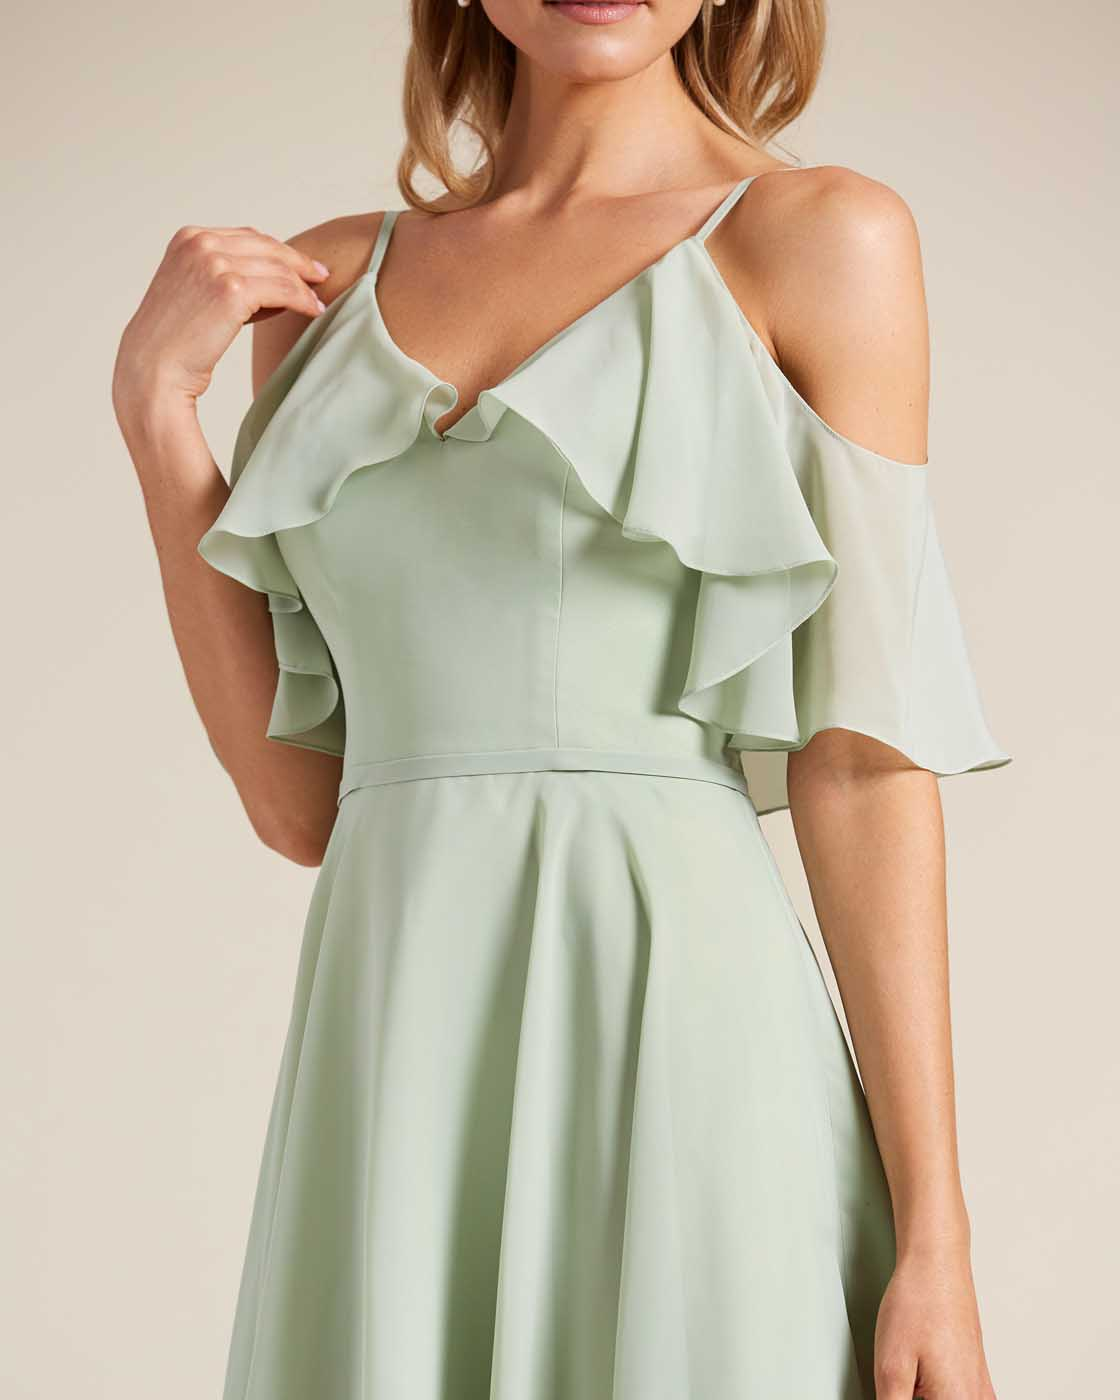 Green Flounce Top Short Dress - Detail